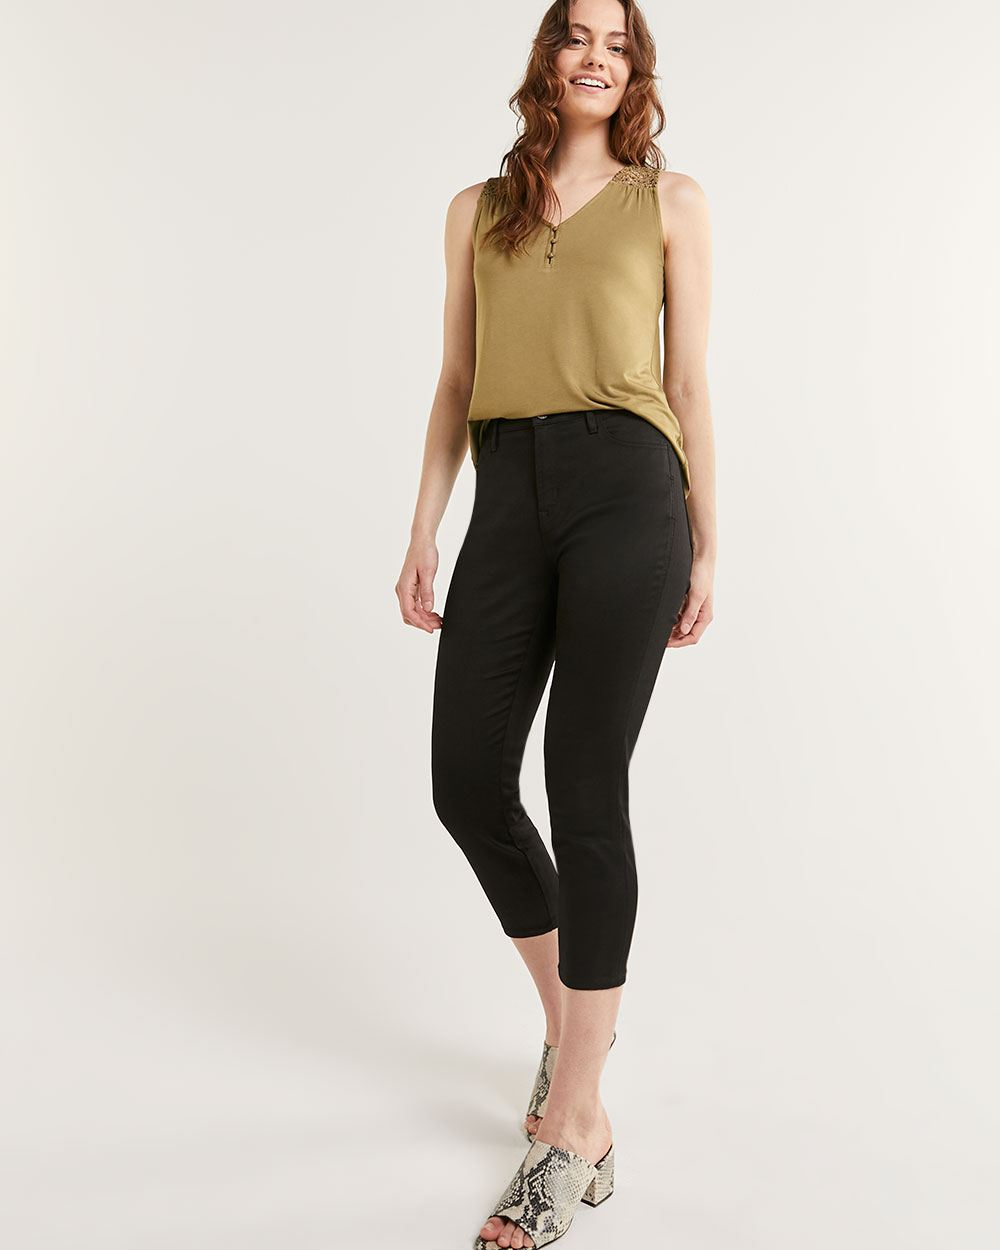 High Rise Cropped Skinny Jeans Signature Soft - Petite